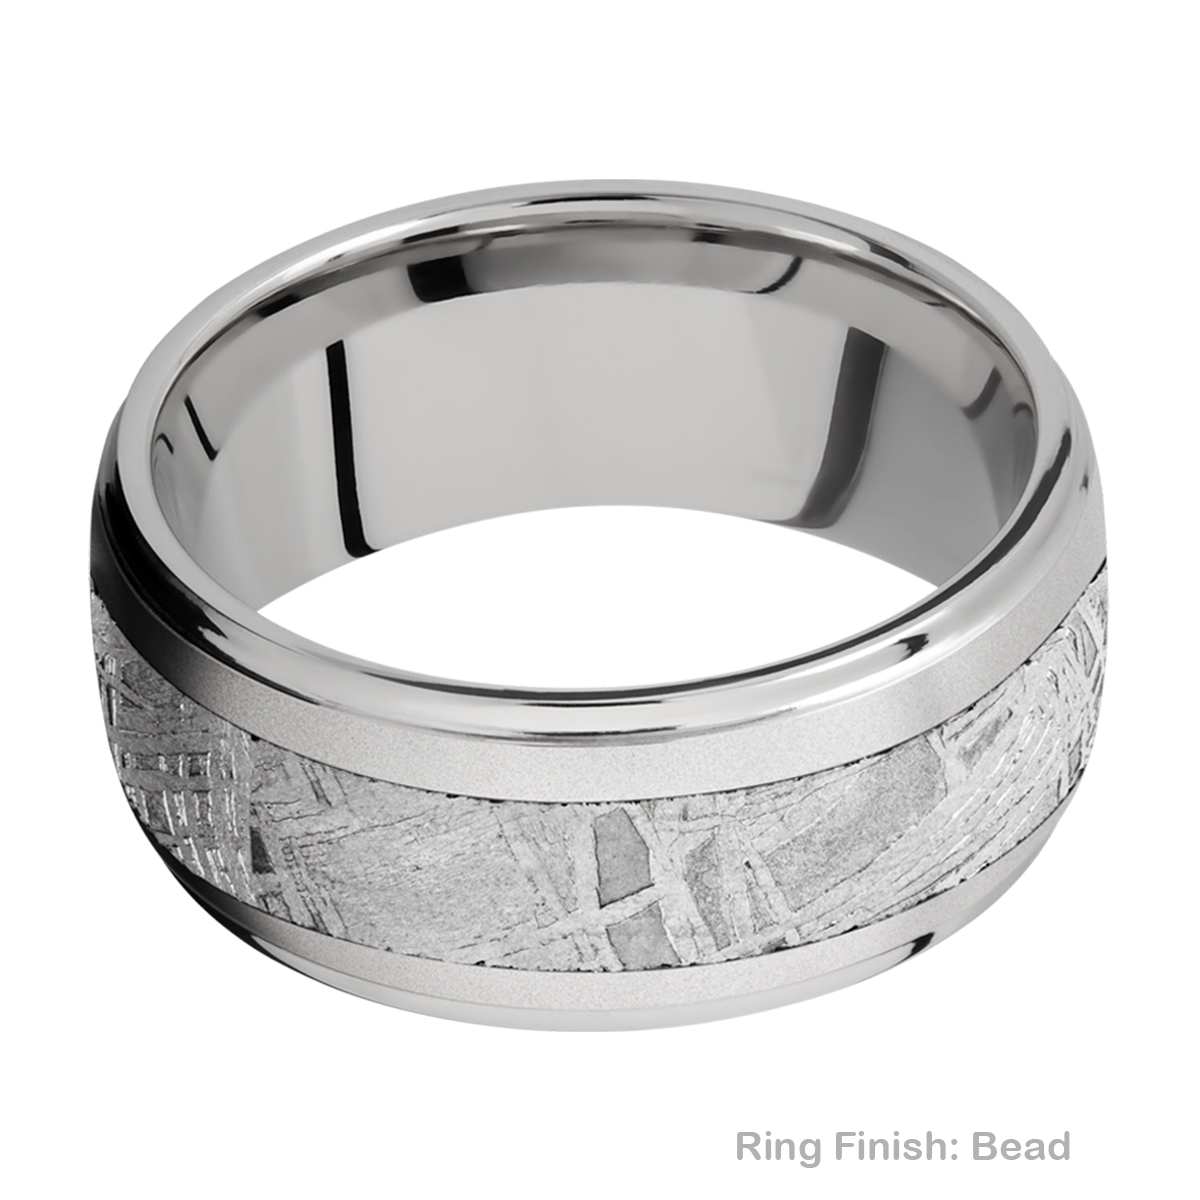 Lashbrook 10DGE15/METEORITE Titanium Wedding Ring or Band Alternative View 2